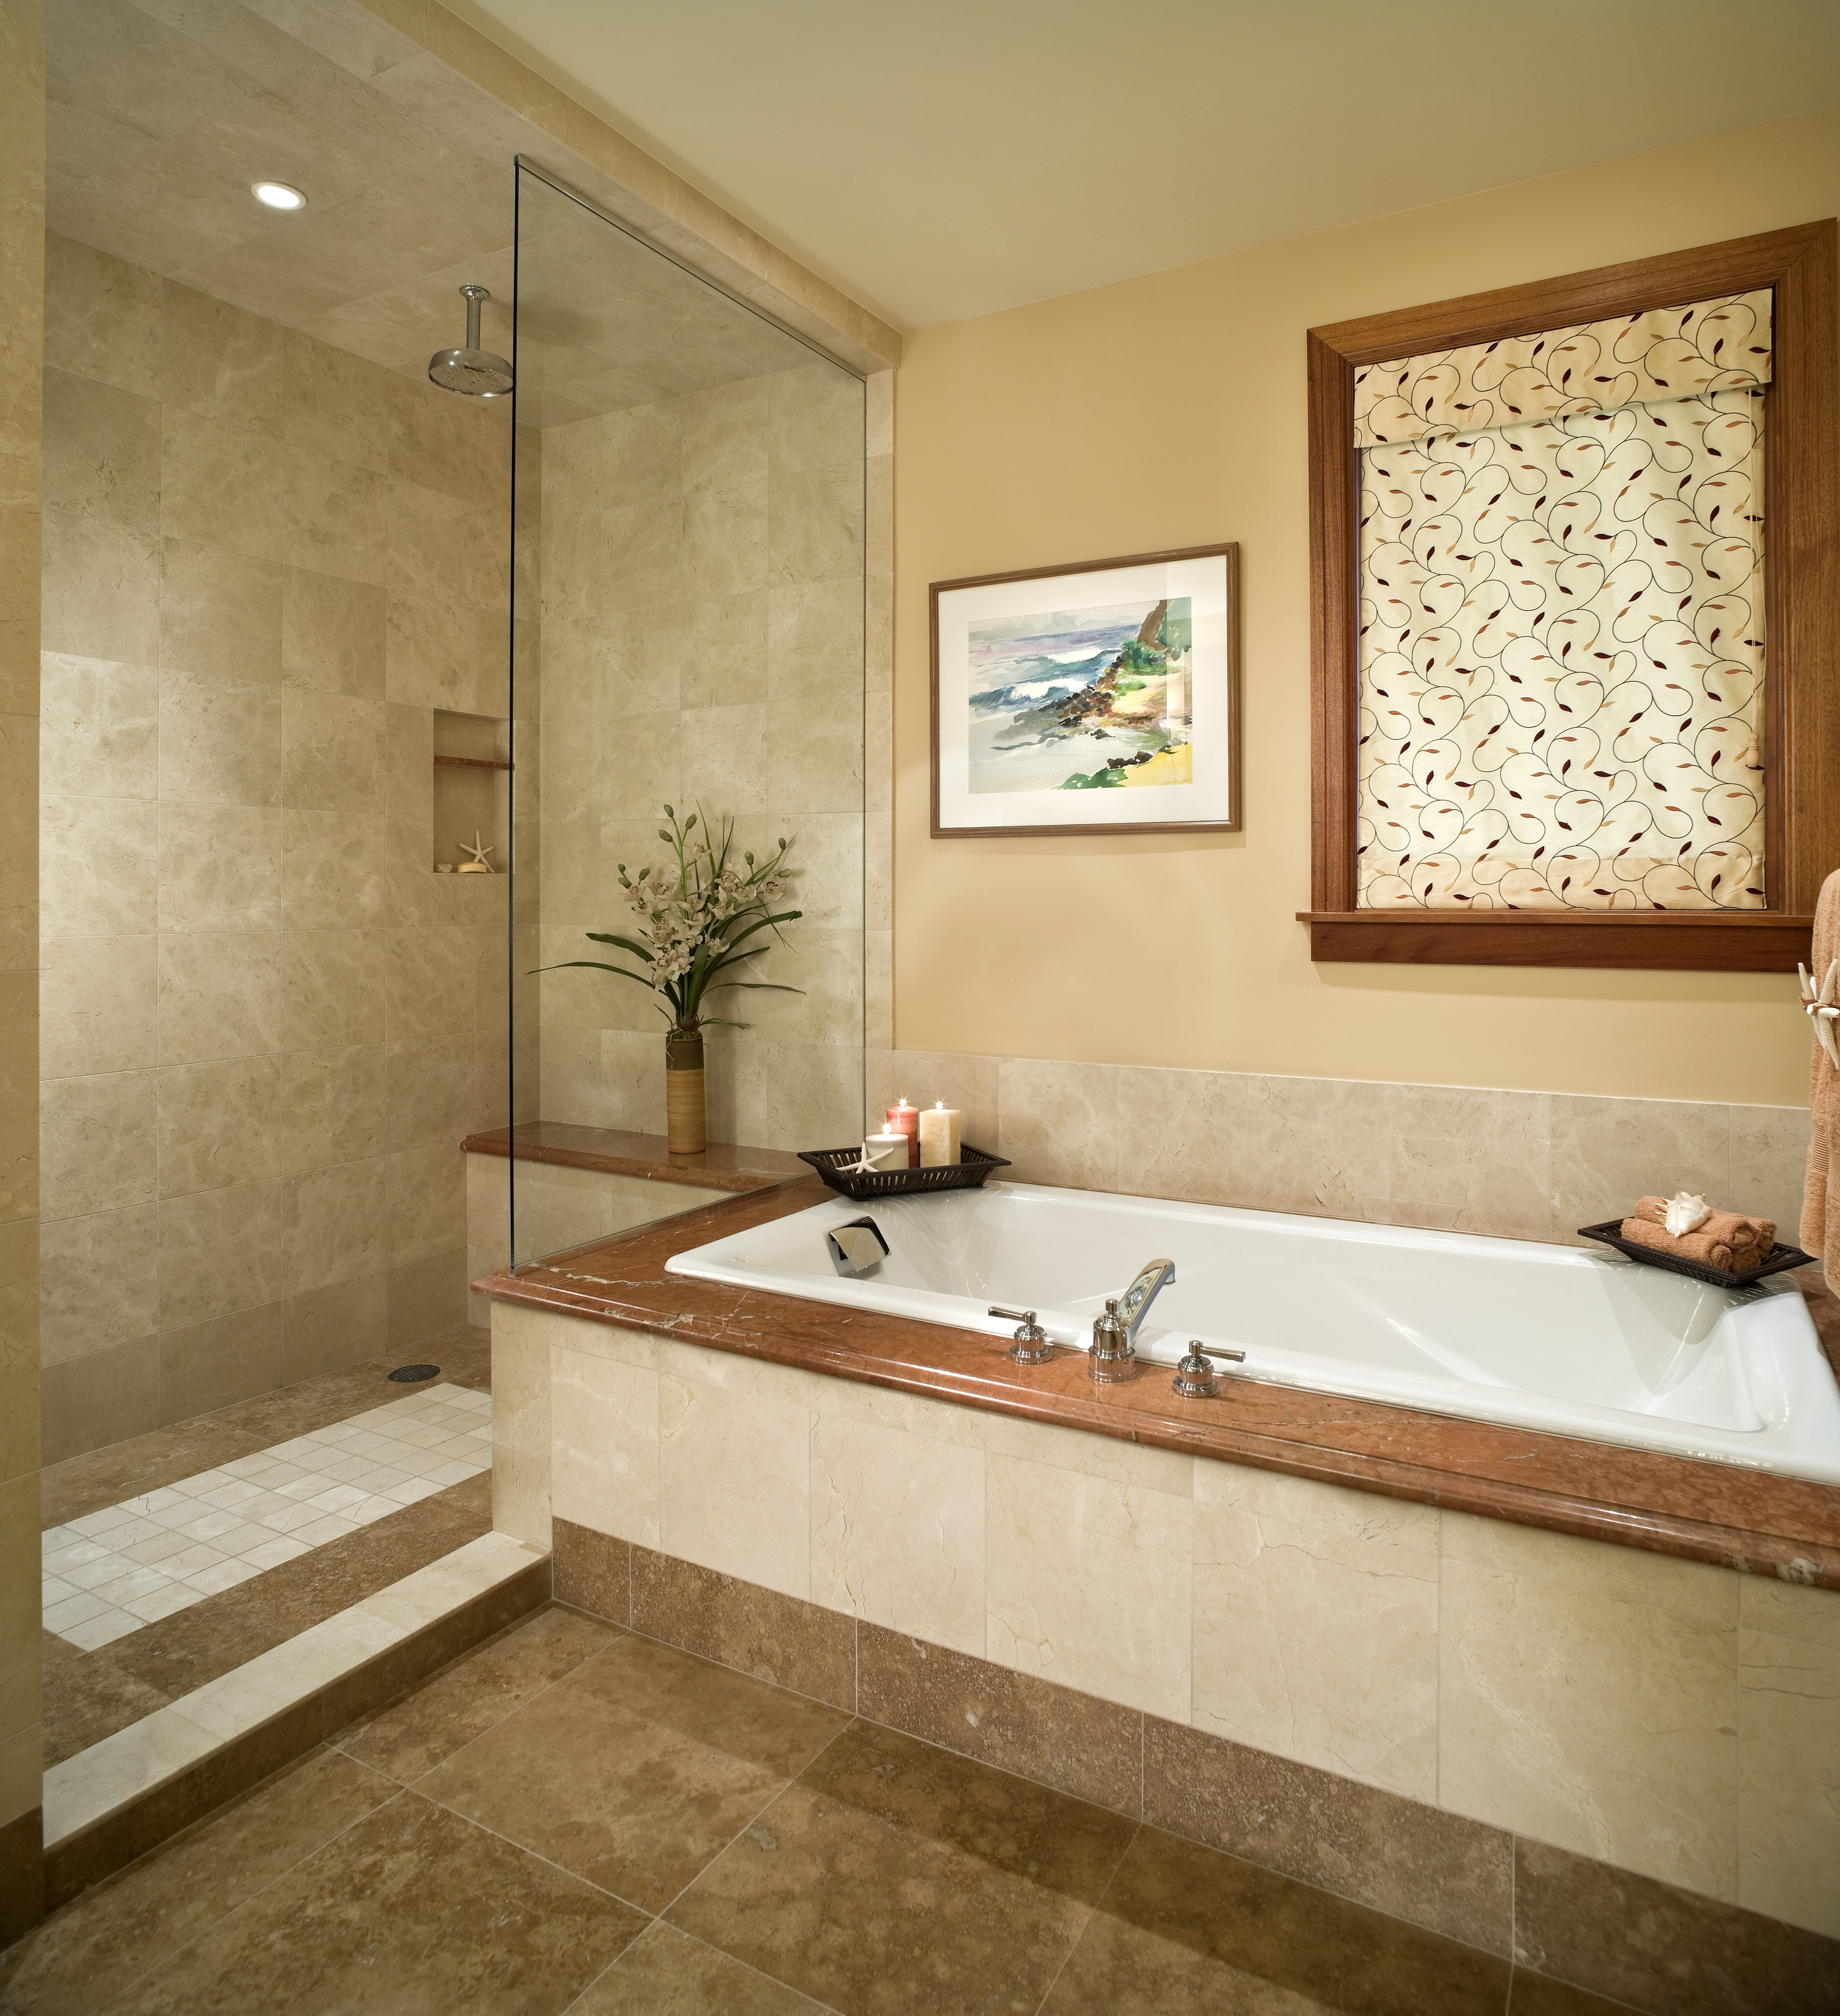 3 DIY Bathroom Remodel Ideas That Make A Difference | Shower seat ...